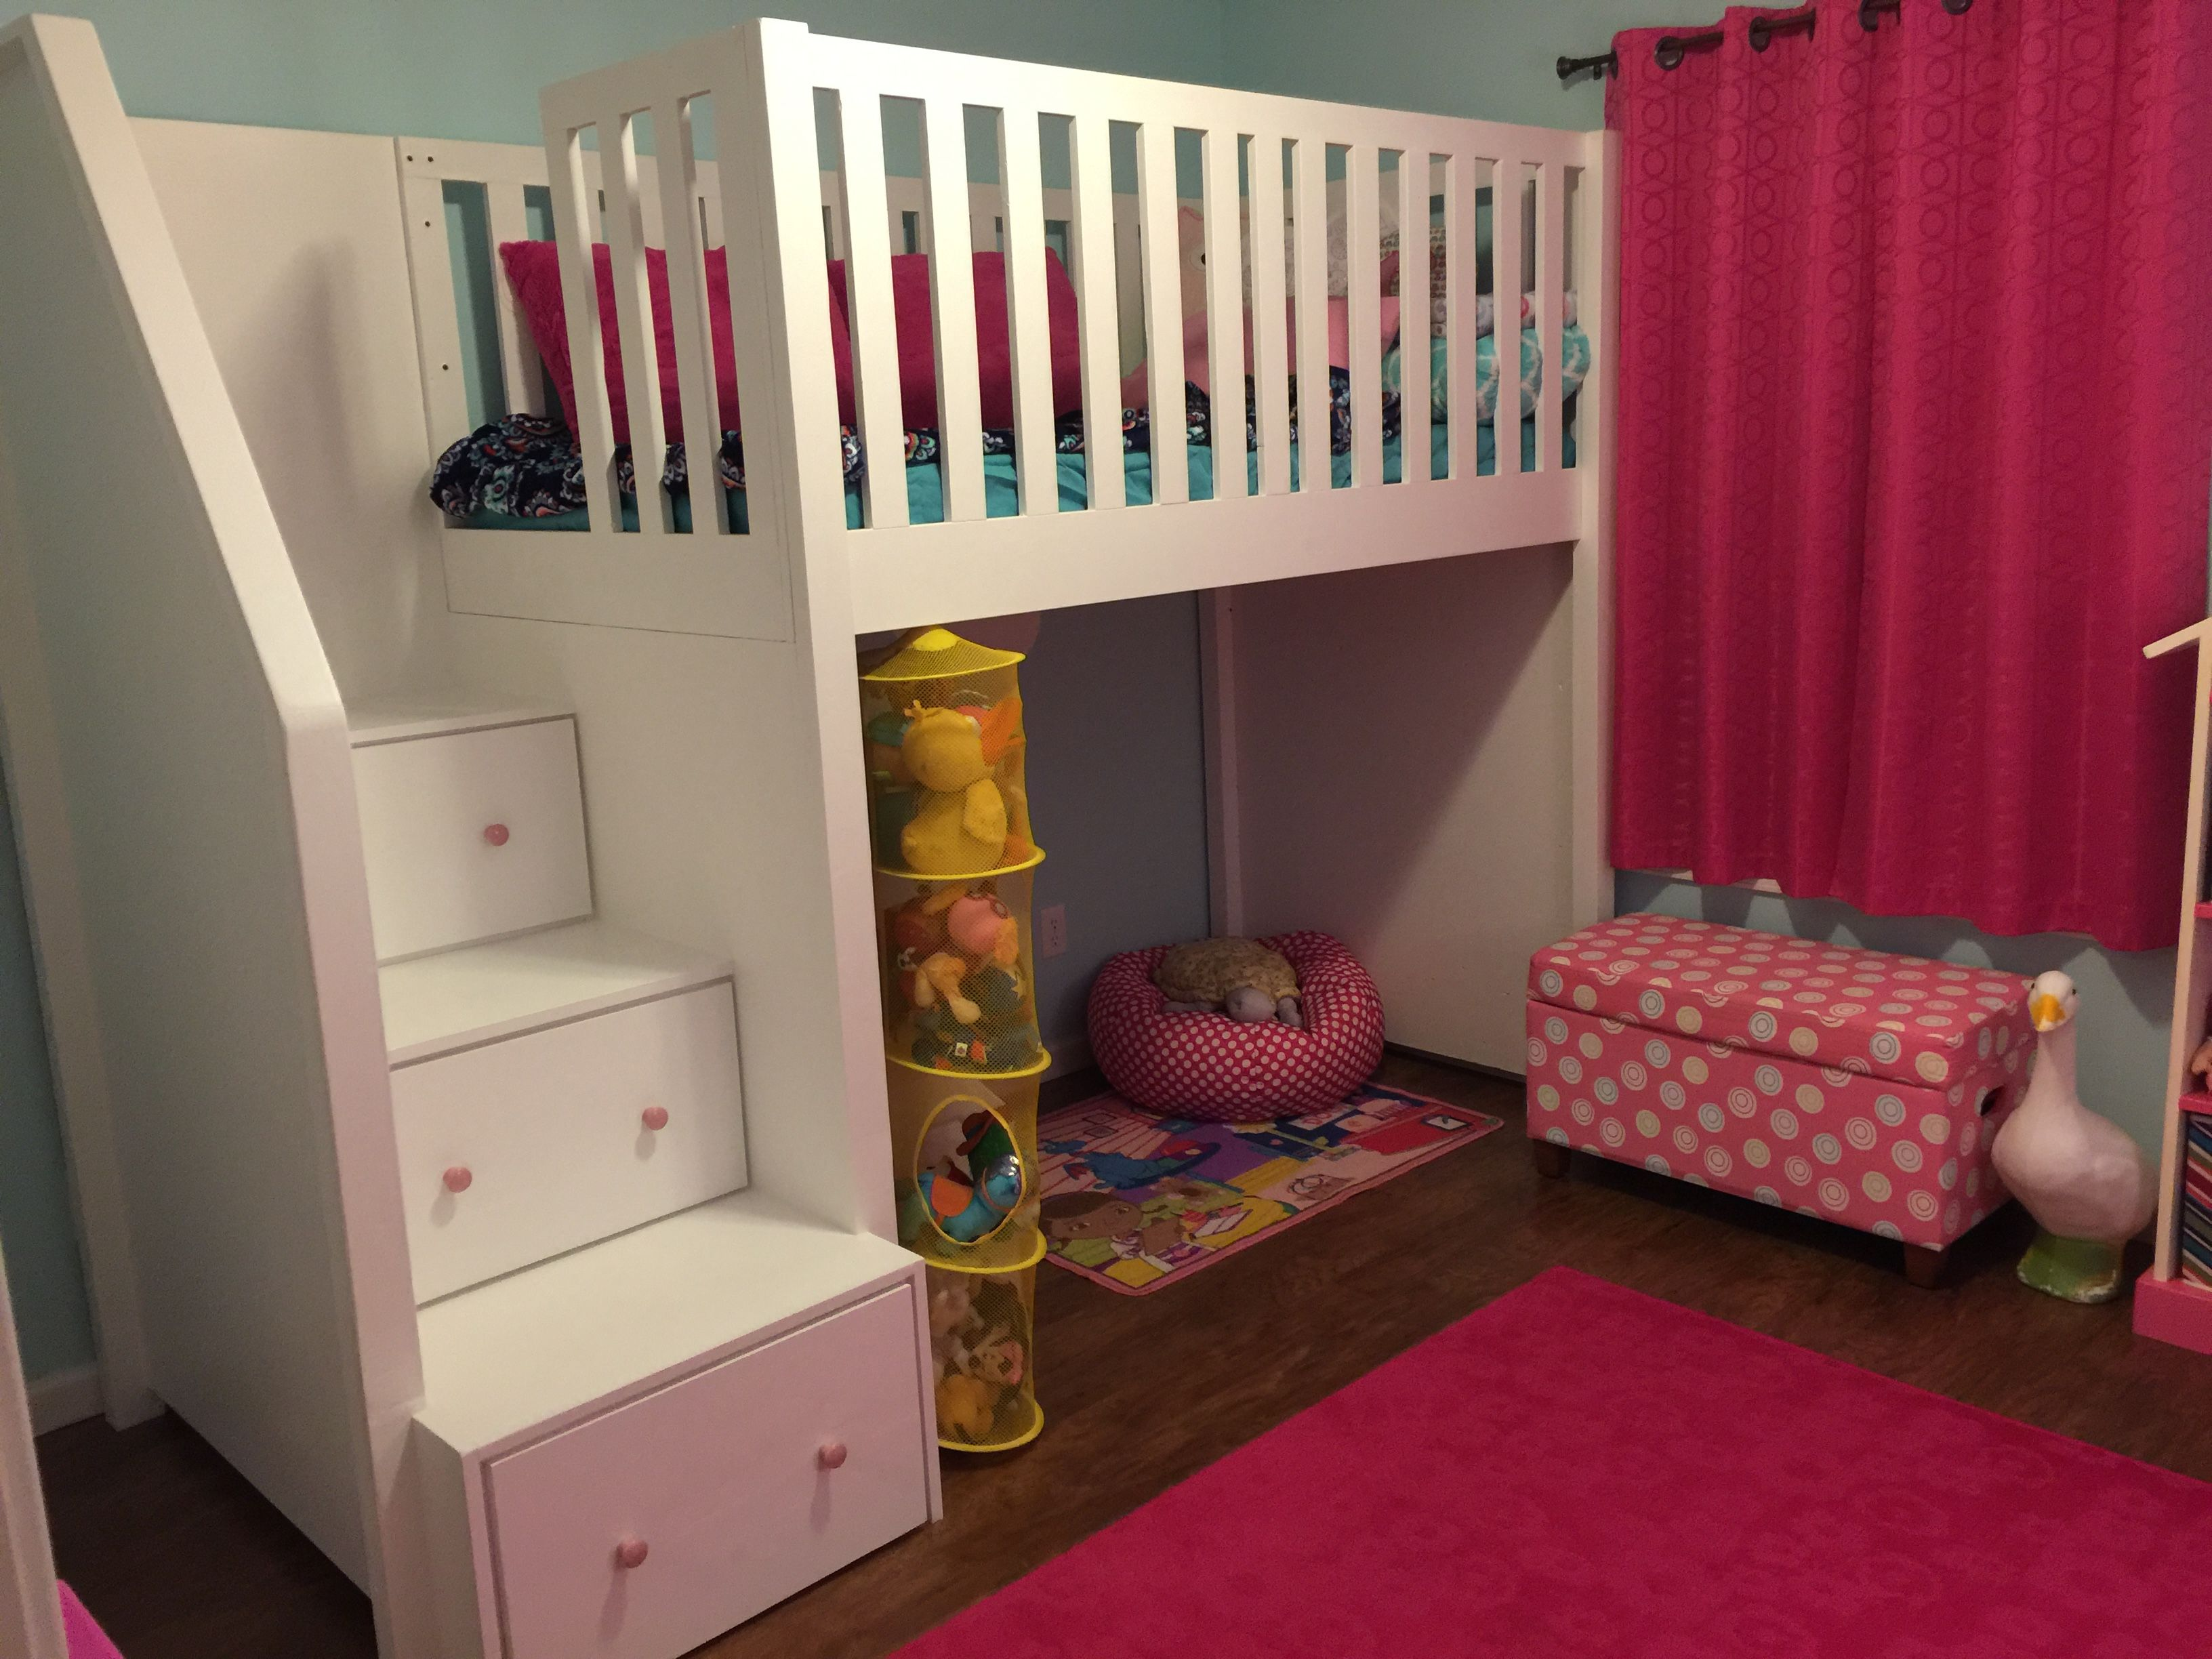 Loft Bed Do It Yourself Home Projects From Ana White Loft Bed